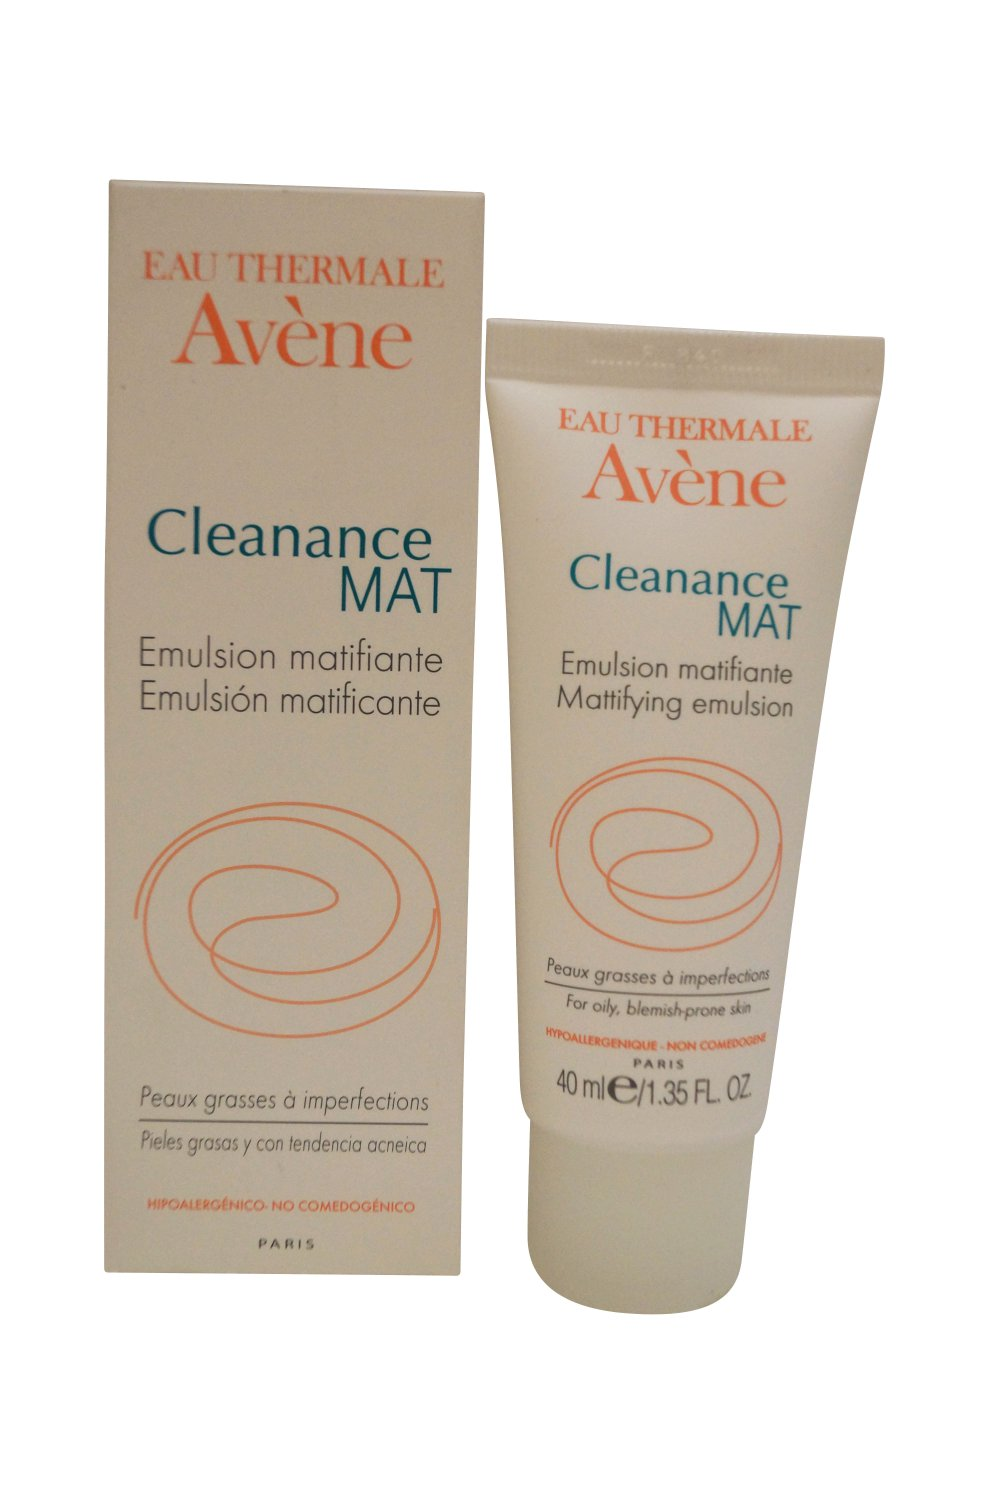 Avene Eau Thermale Cleanance Mat Mattifying Emulsion 40 ml